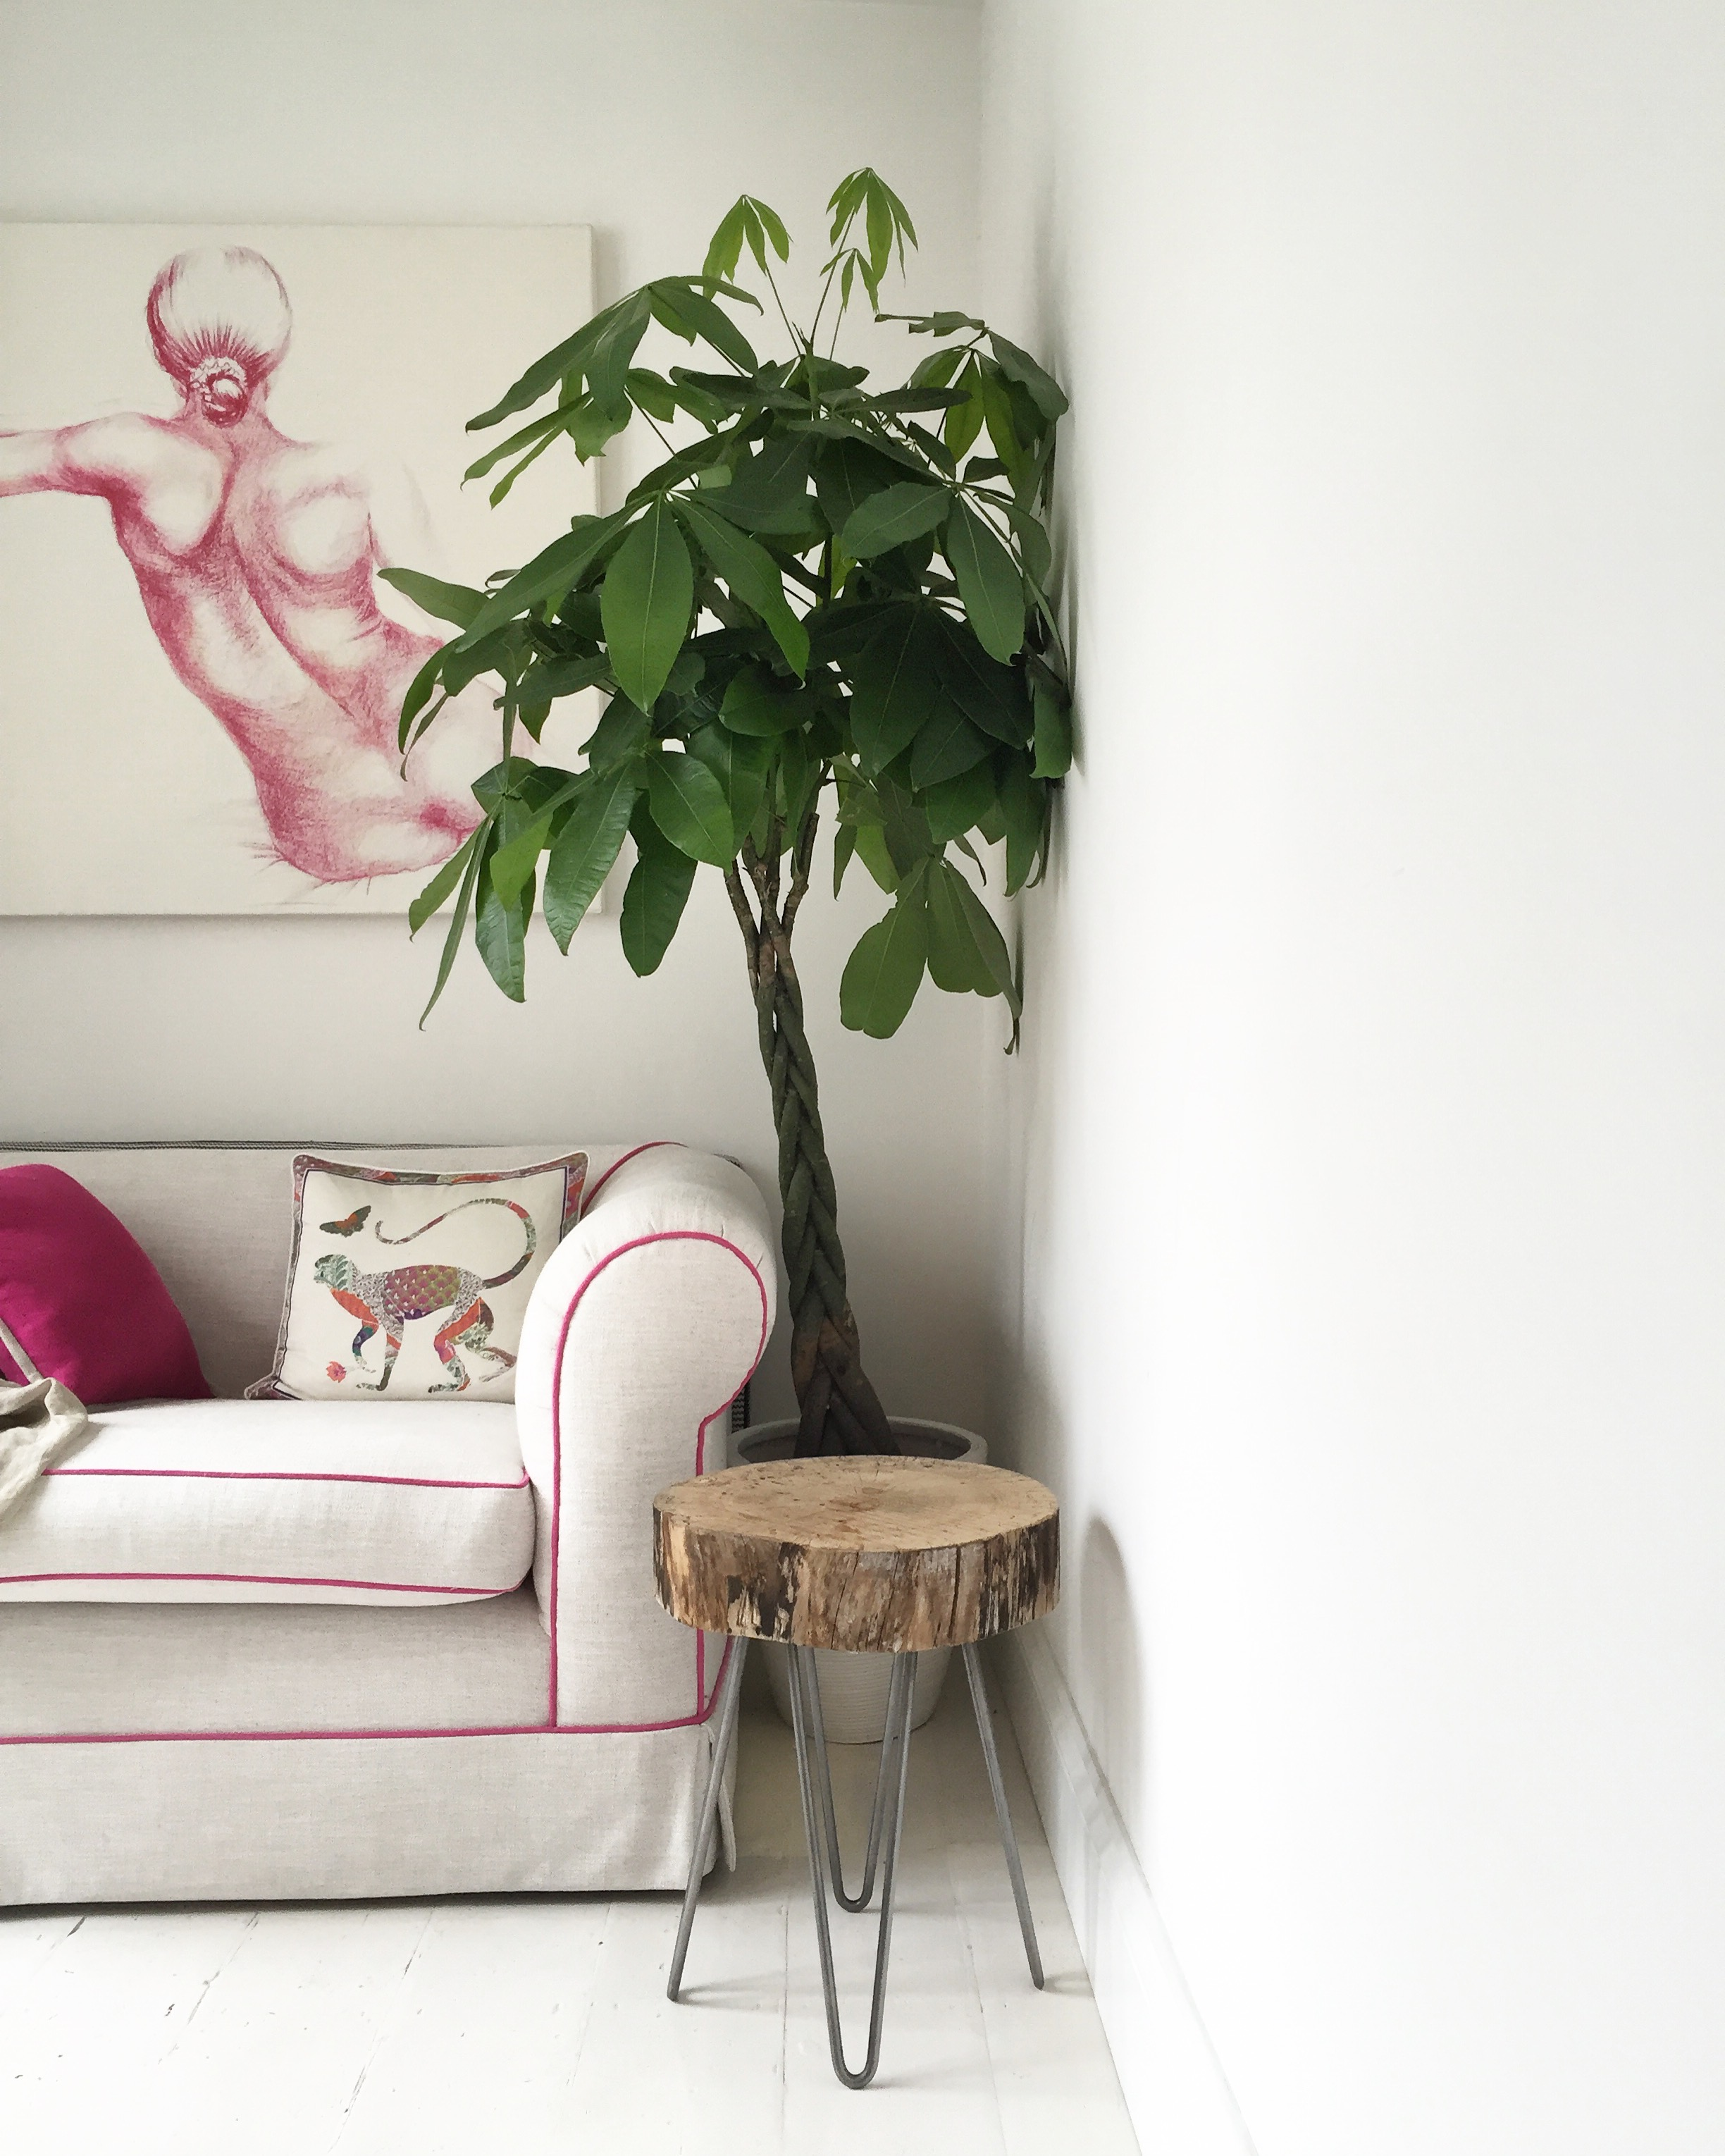 Residential: TV cubby room renovation. Sofa upholstered in natural fabric with bright pink piping to tie in with & accentuate wall art.